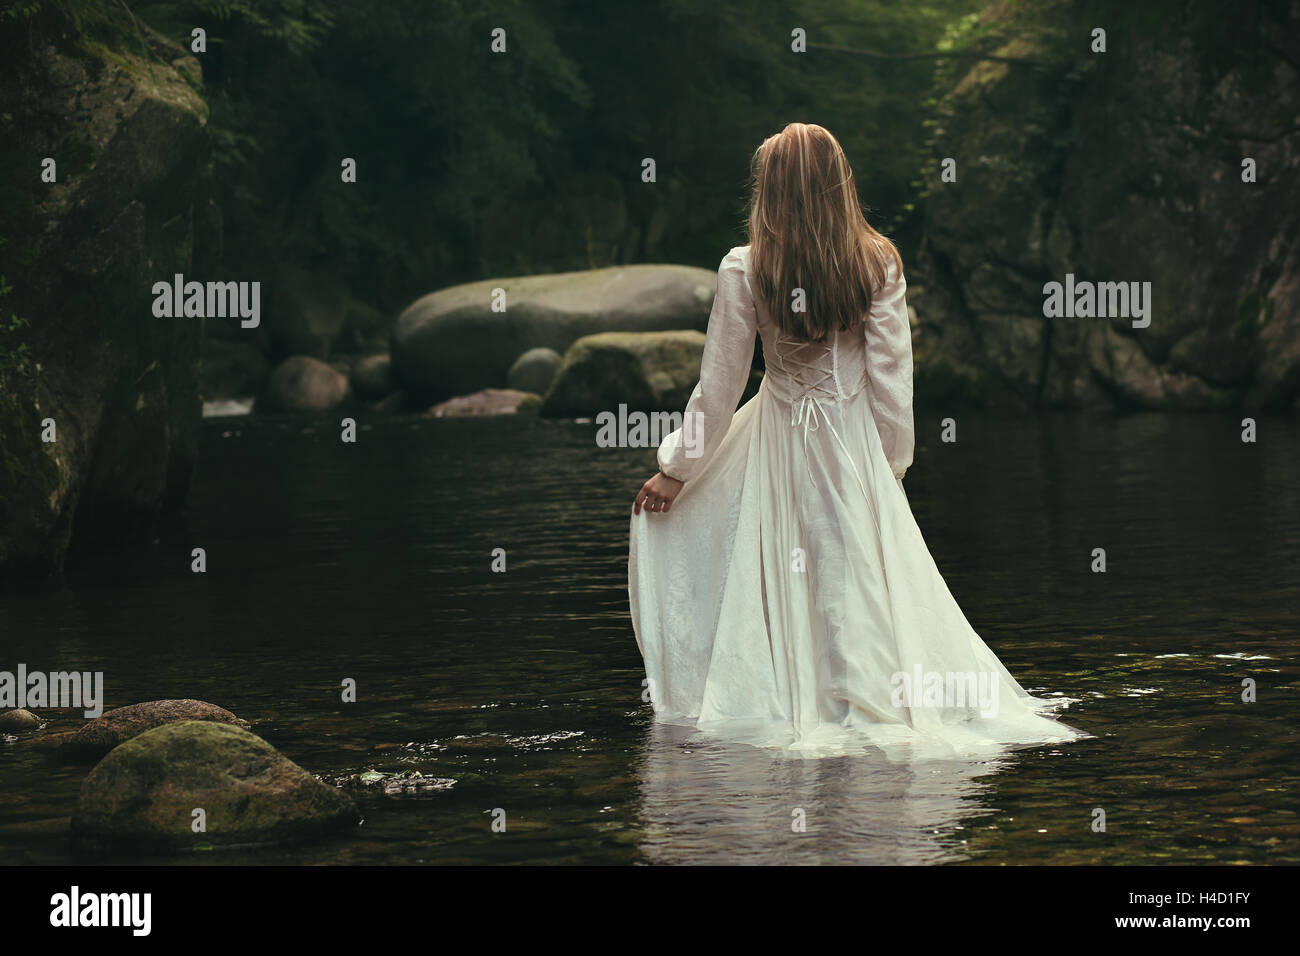 Romantic woman walks into a green stream. Ethereal and dreamy - Stock Image